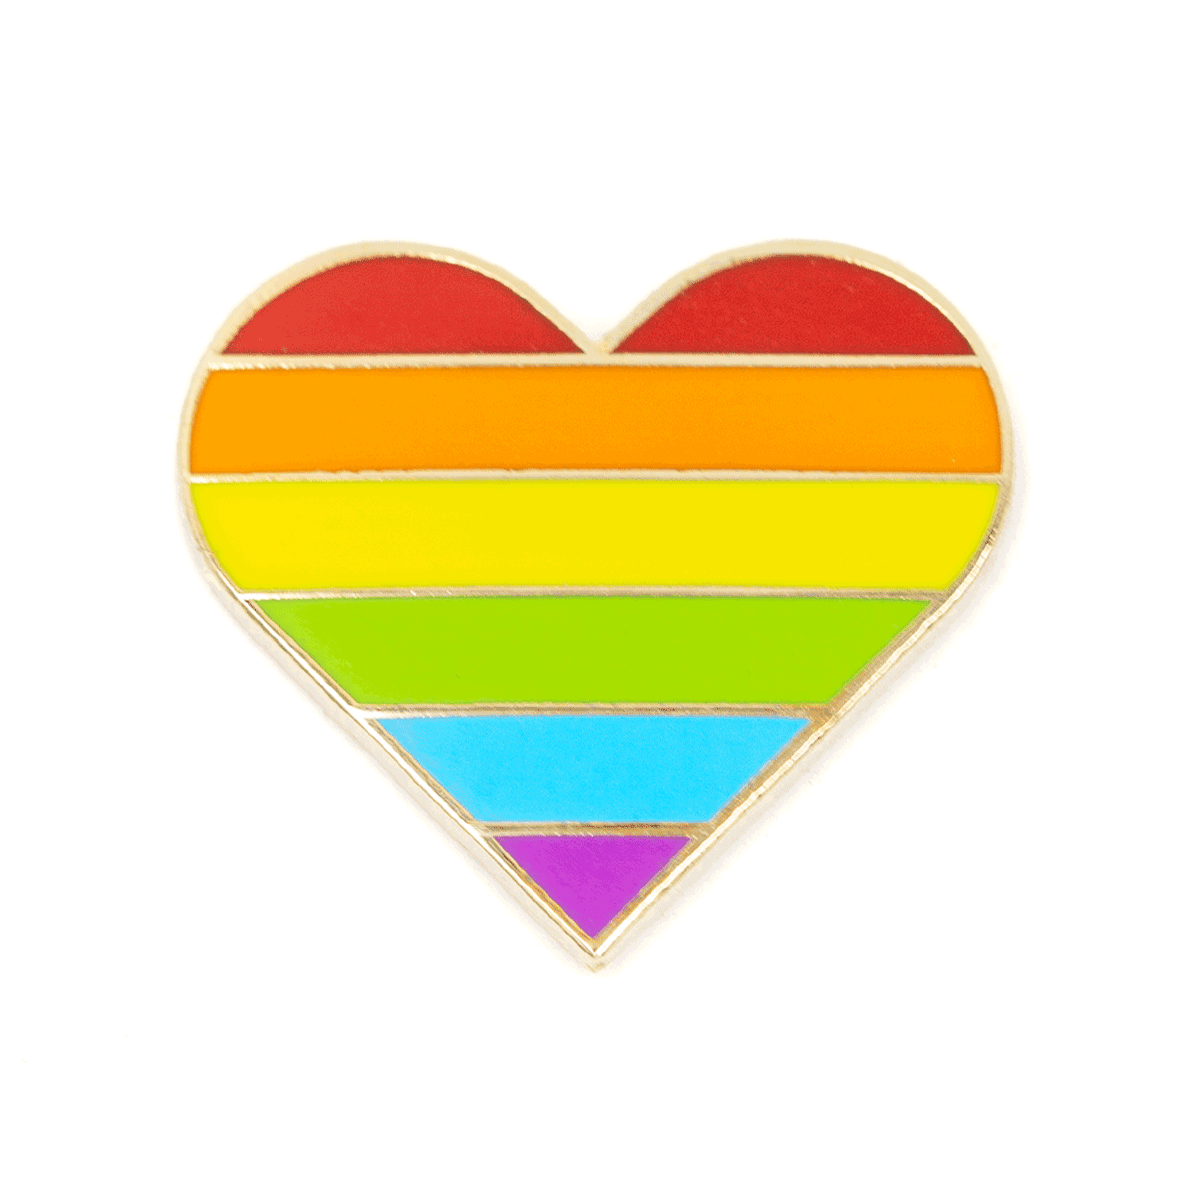 Enamel Pin - Rainbow Pride Heart, These Are Things, Handcrafted Home Goods and Gifts